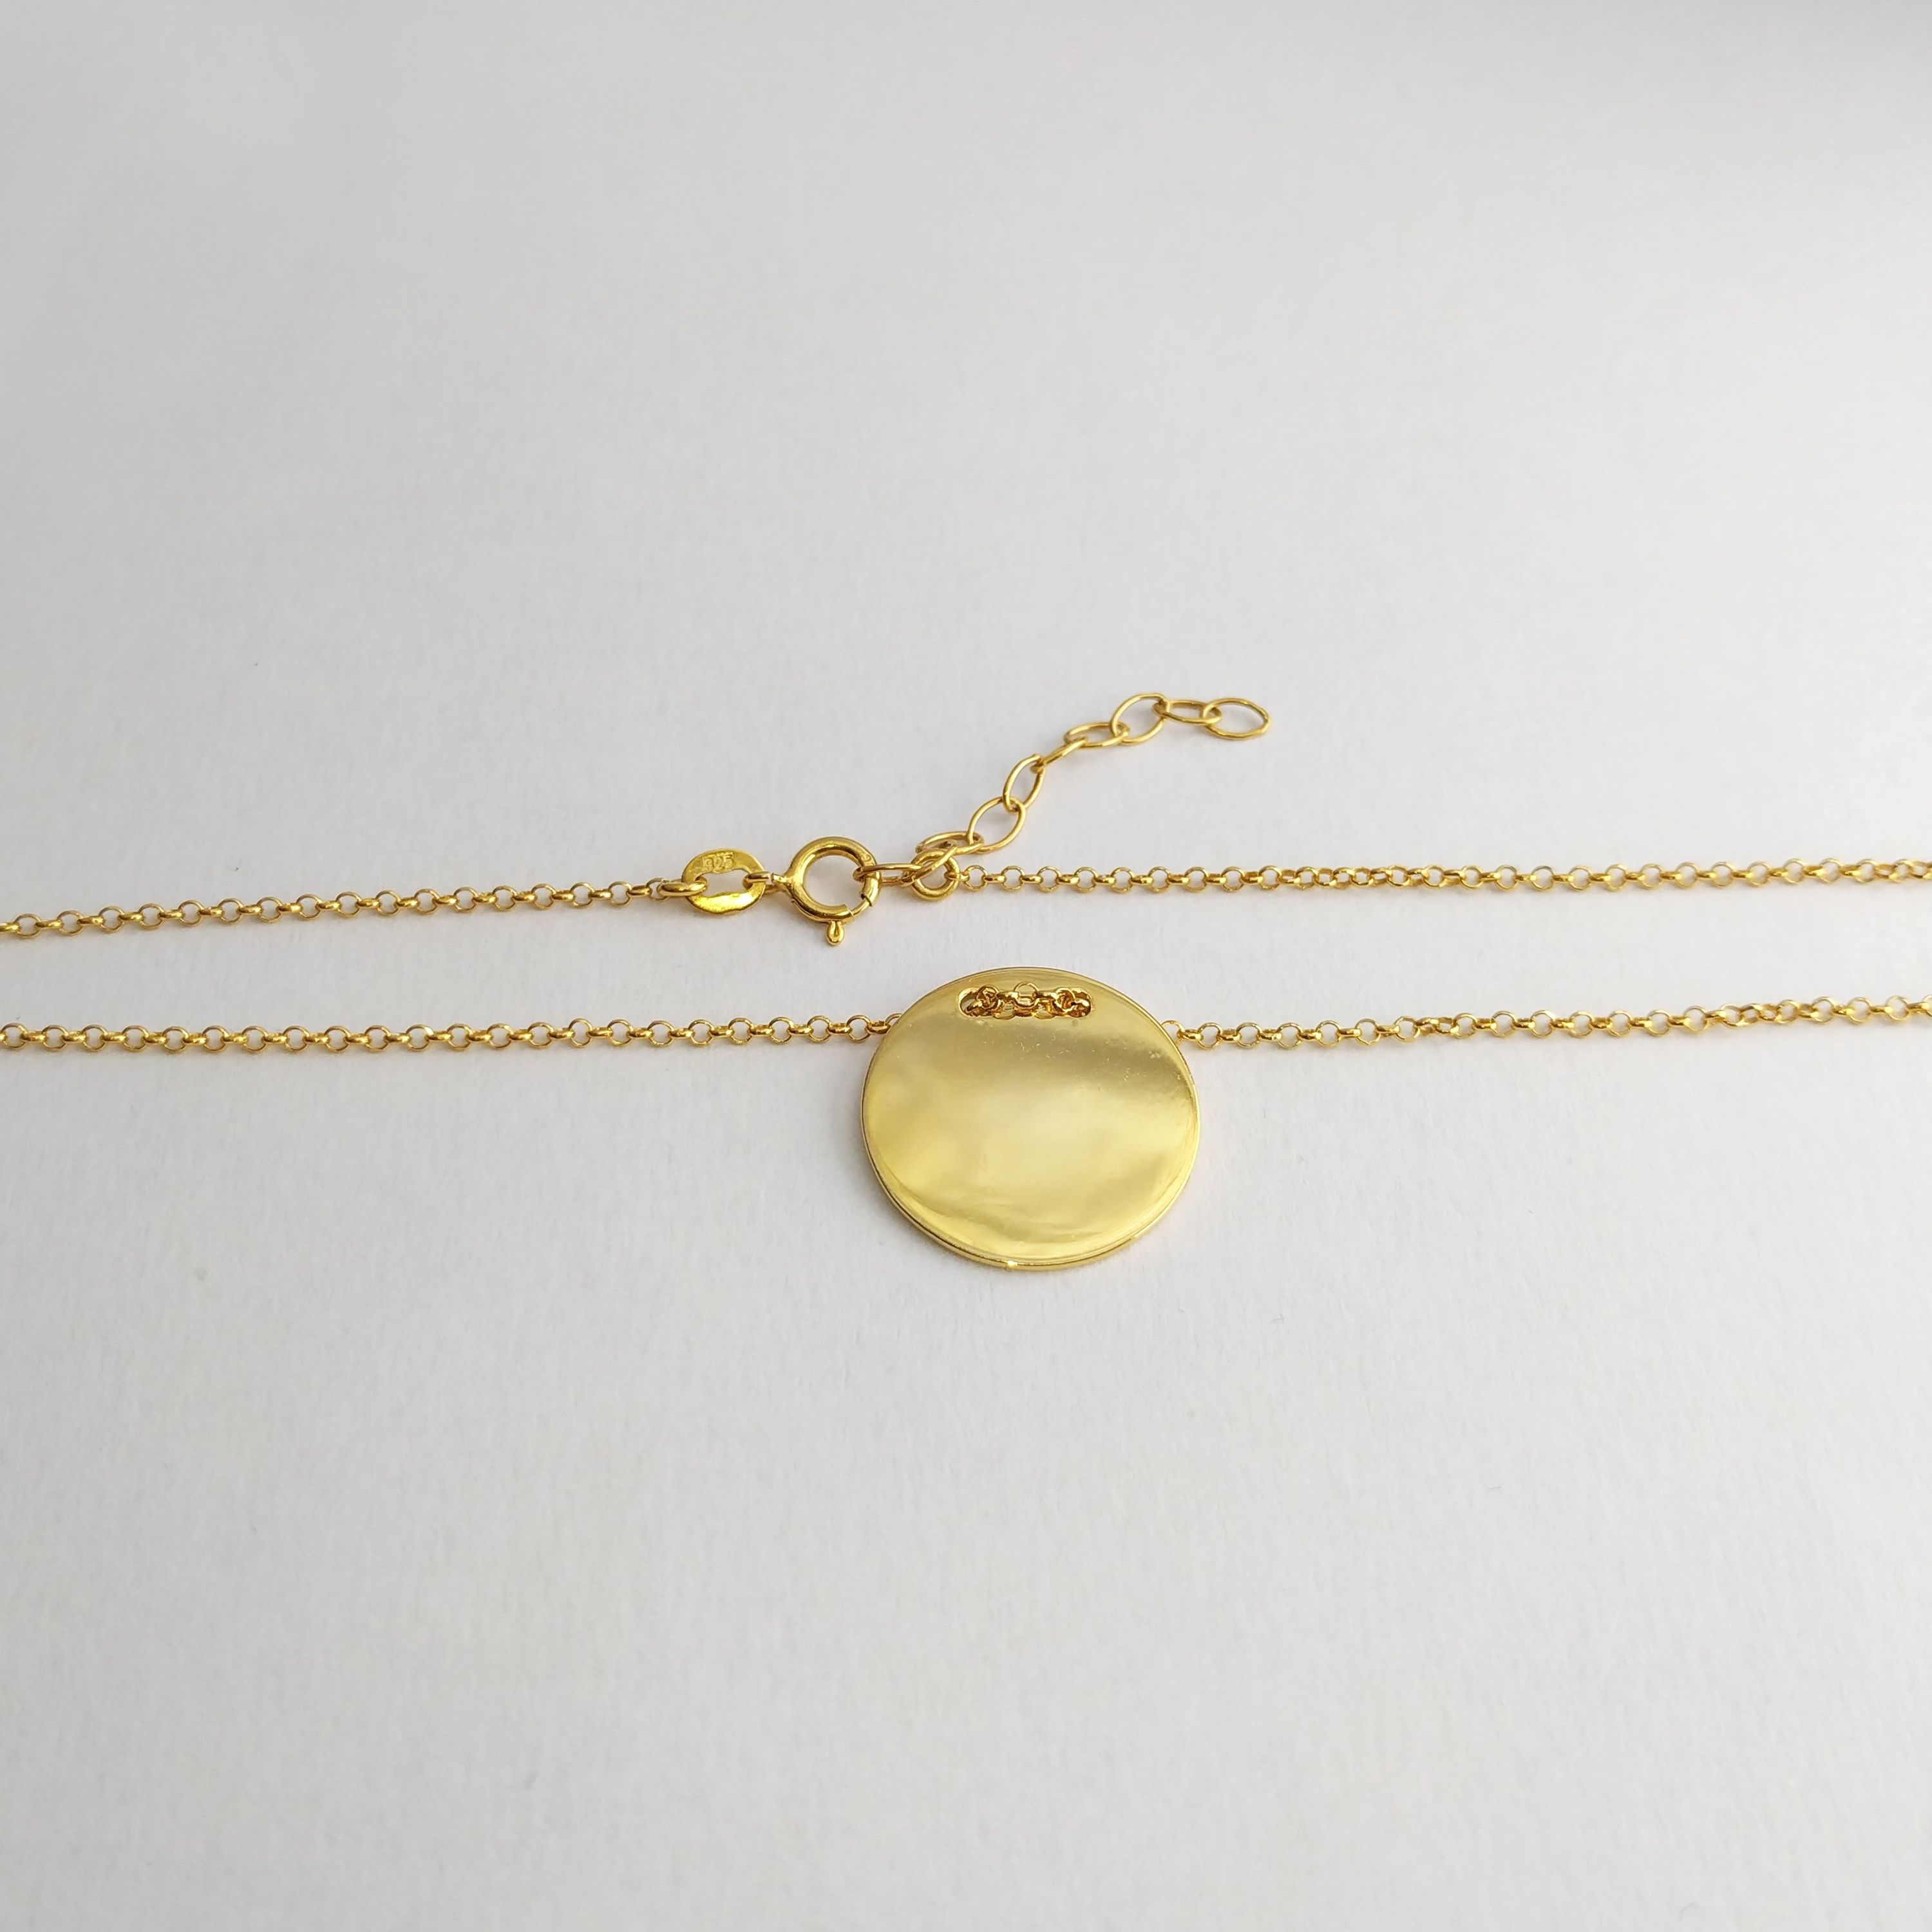 13a89eaae4b5b Shiny Gold Disc Necklace, Round Disc Necklace, 9K/14K Gold filled ...